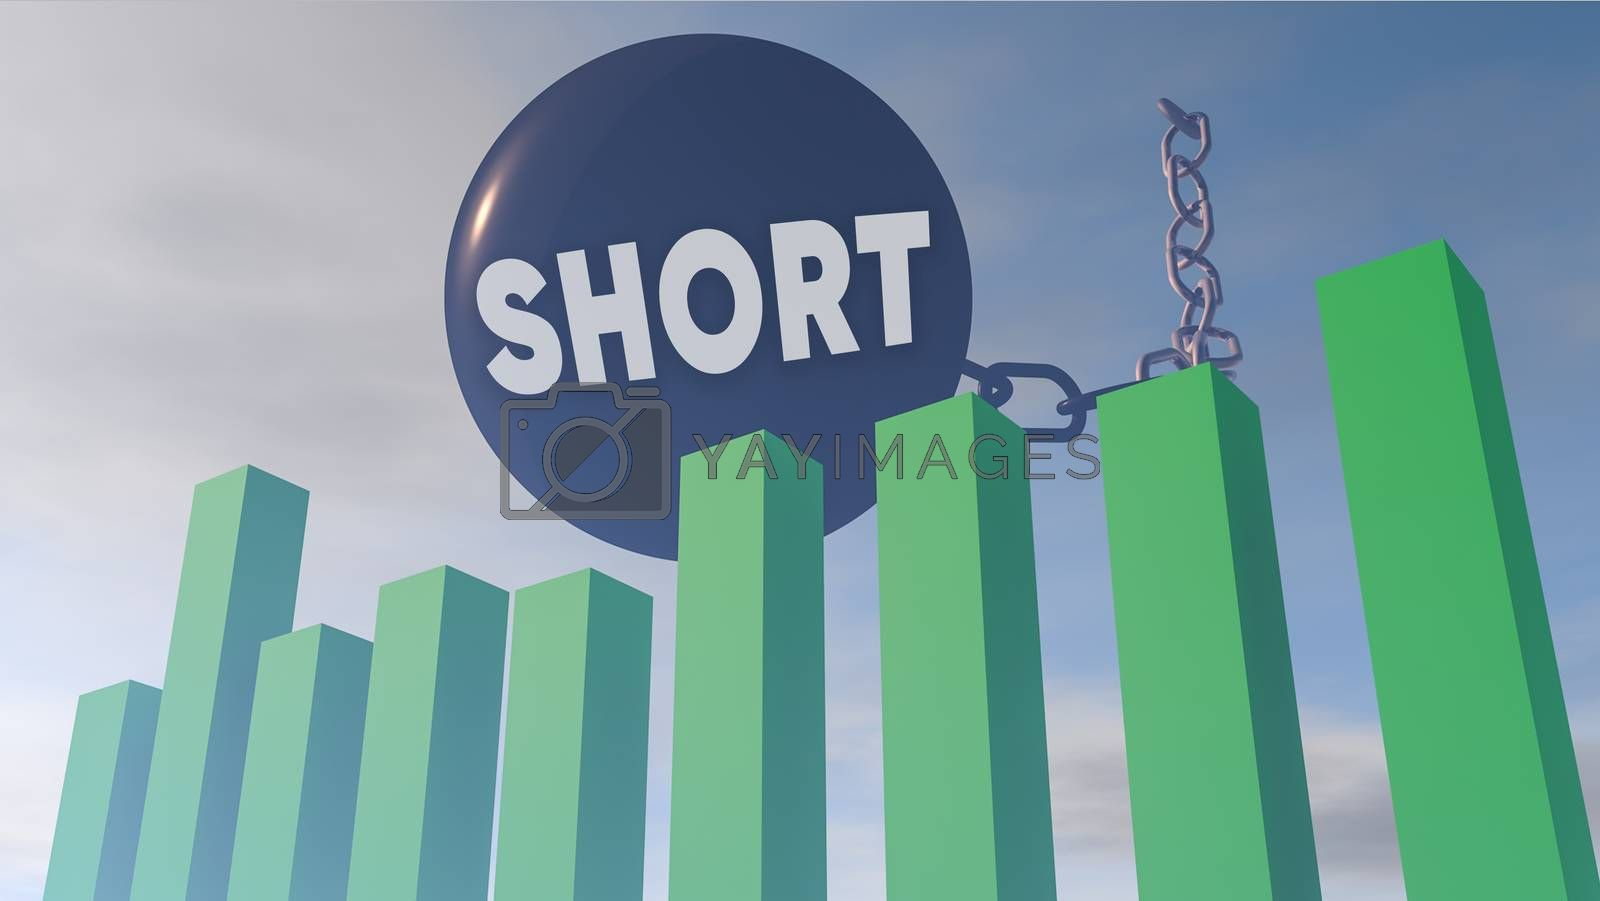 3D rendering illustration of financial stock market influenced by short trading